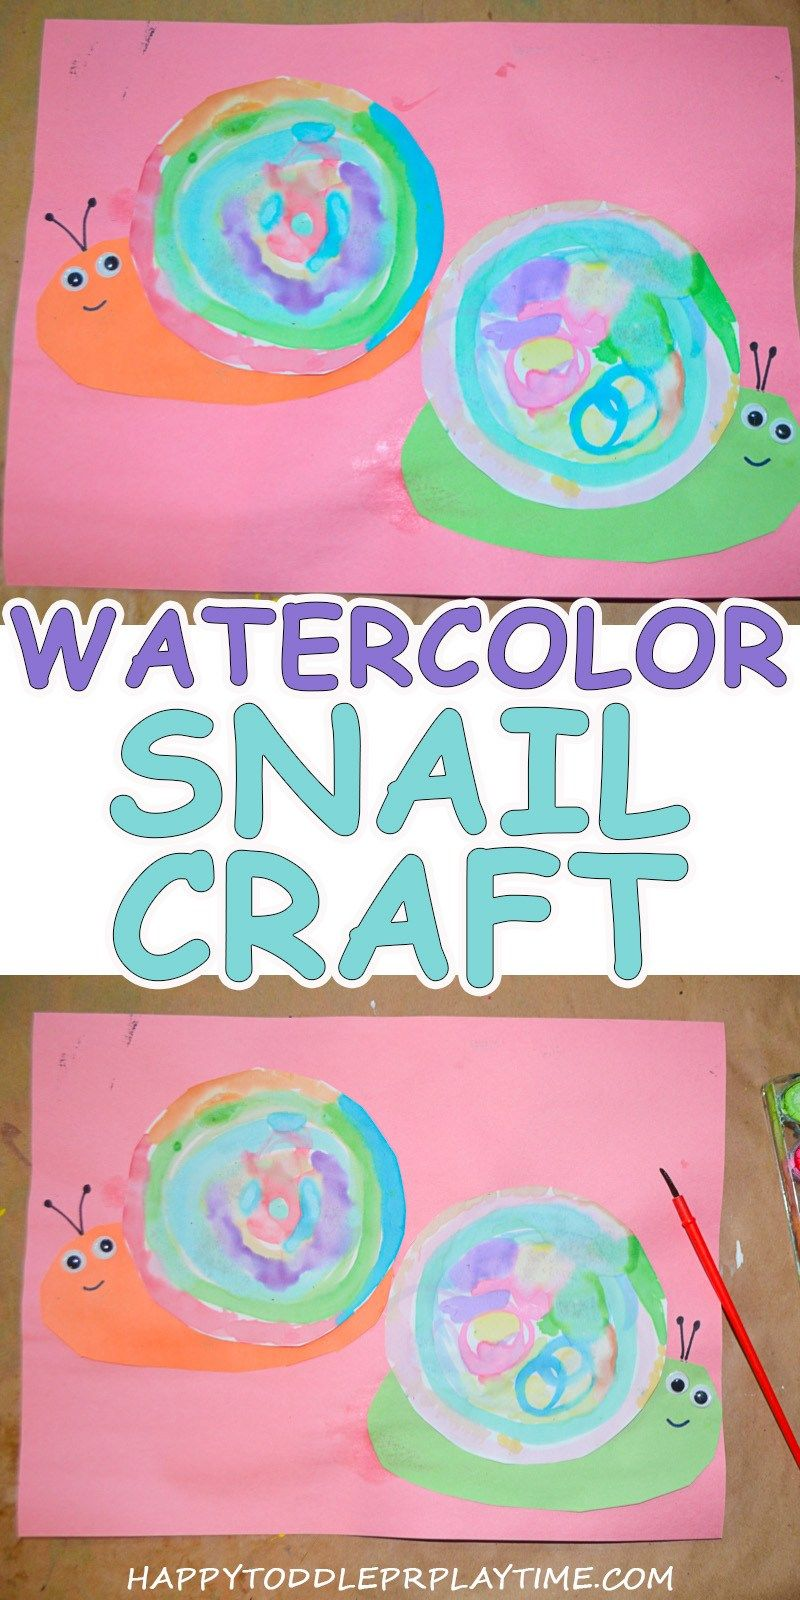 Watercolour Snails Creative Art Activities For Toddlers Summer